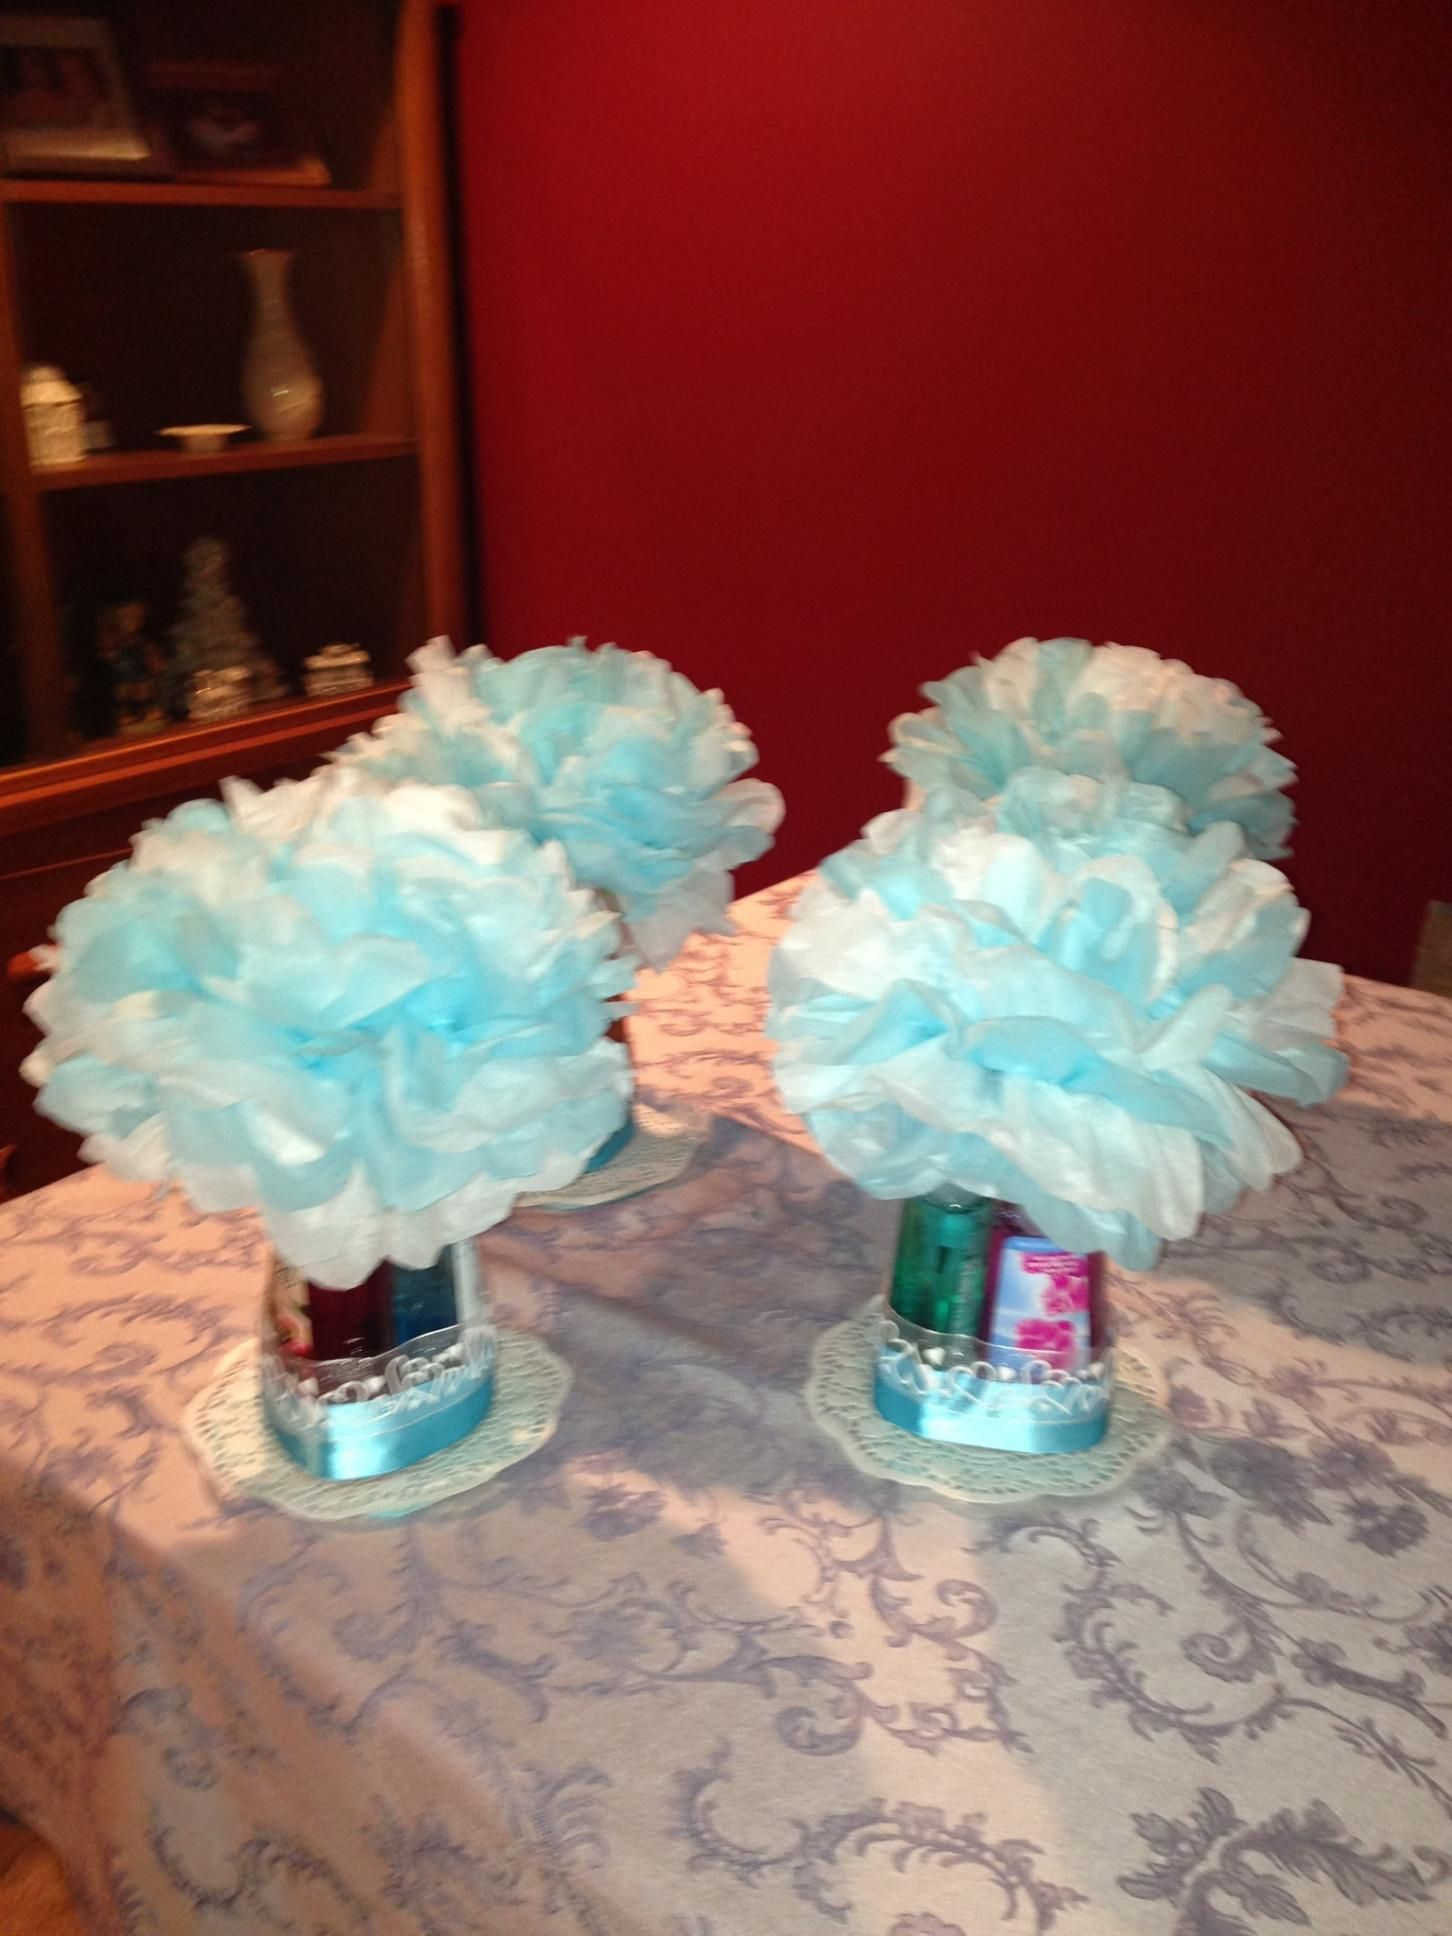 Bridal Shower Center Pieces 3 Hand Soaps From Bath And